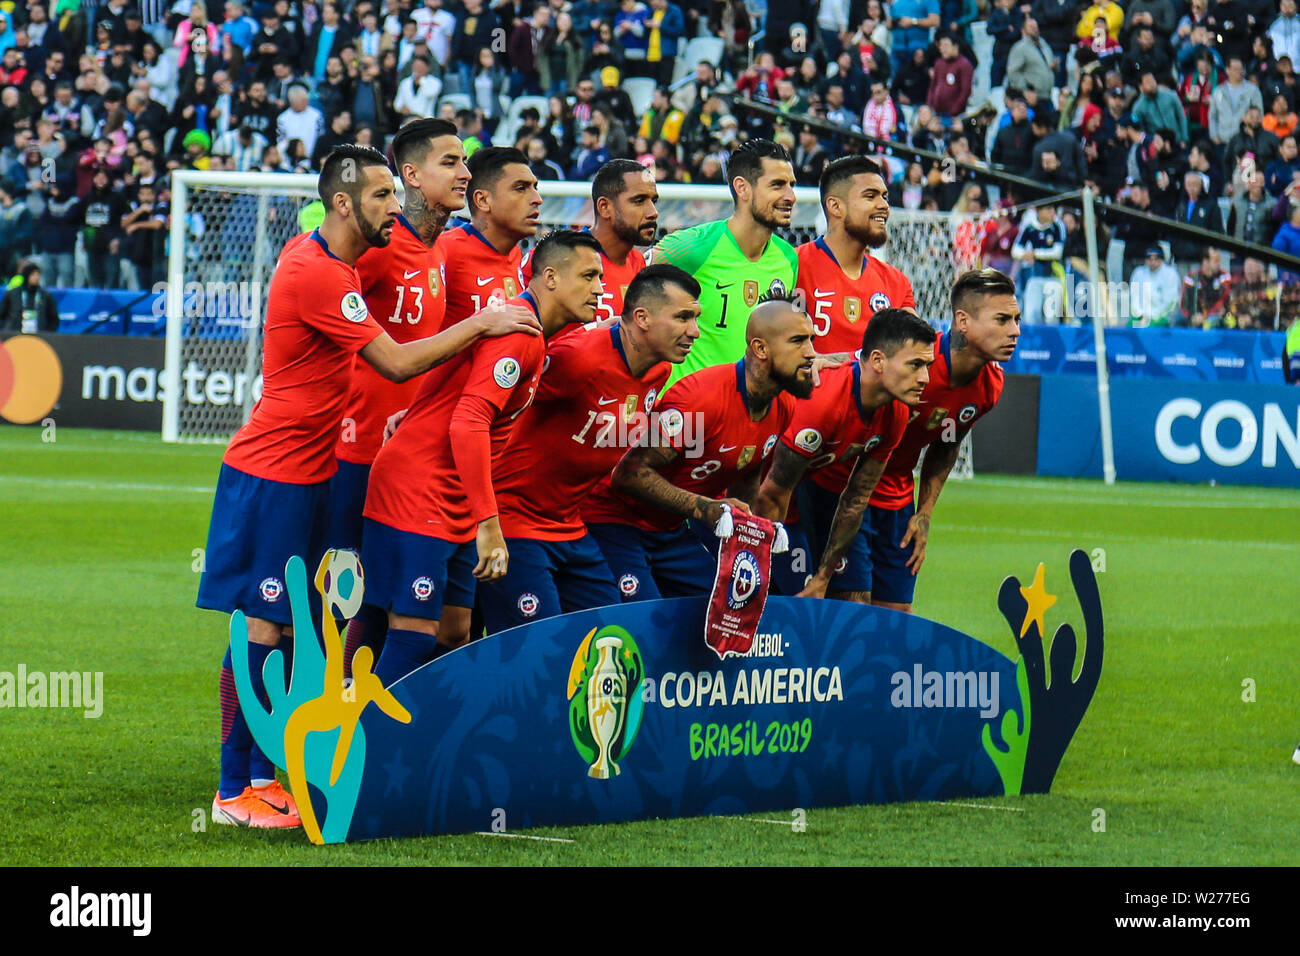 Brazil. 6th July, 2019. Game of the match between Argentina X Chile valid for third place dispute of Copa America 2019, in the Arena Corinthians, in São Paulo, this Saturday (06). Photo: Geraldo Bubniak Credit: Geraldo Bubniak/ZUMA Wire/Alamy Live News Stock Photo